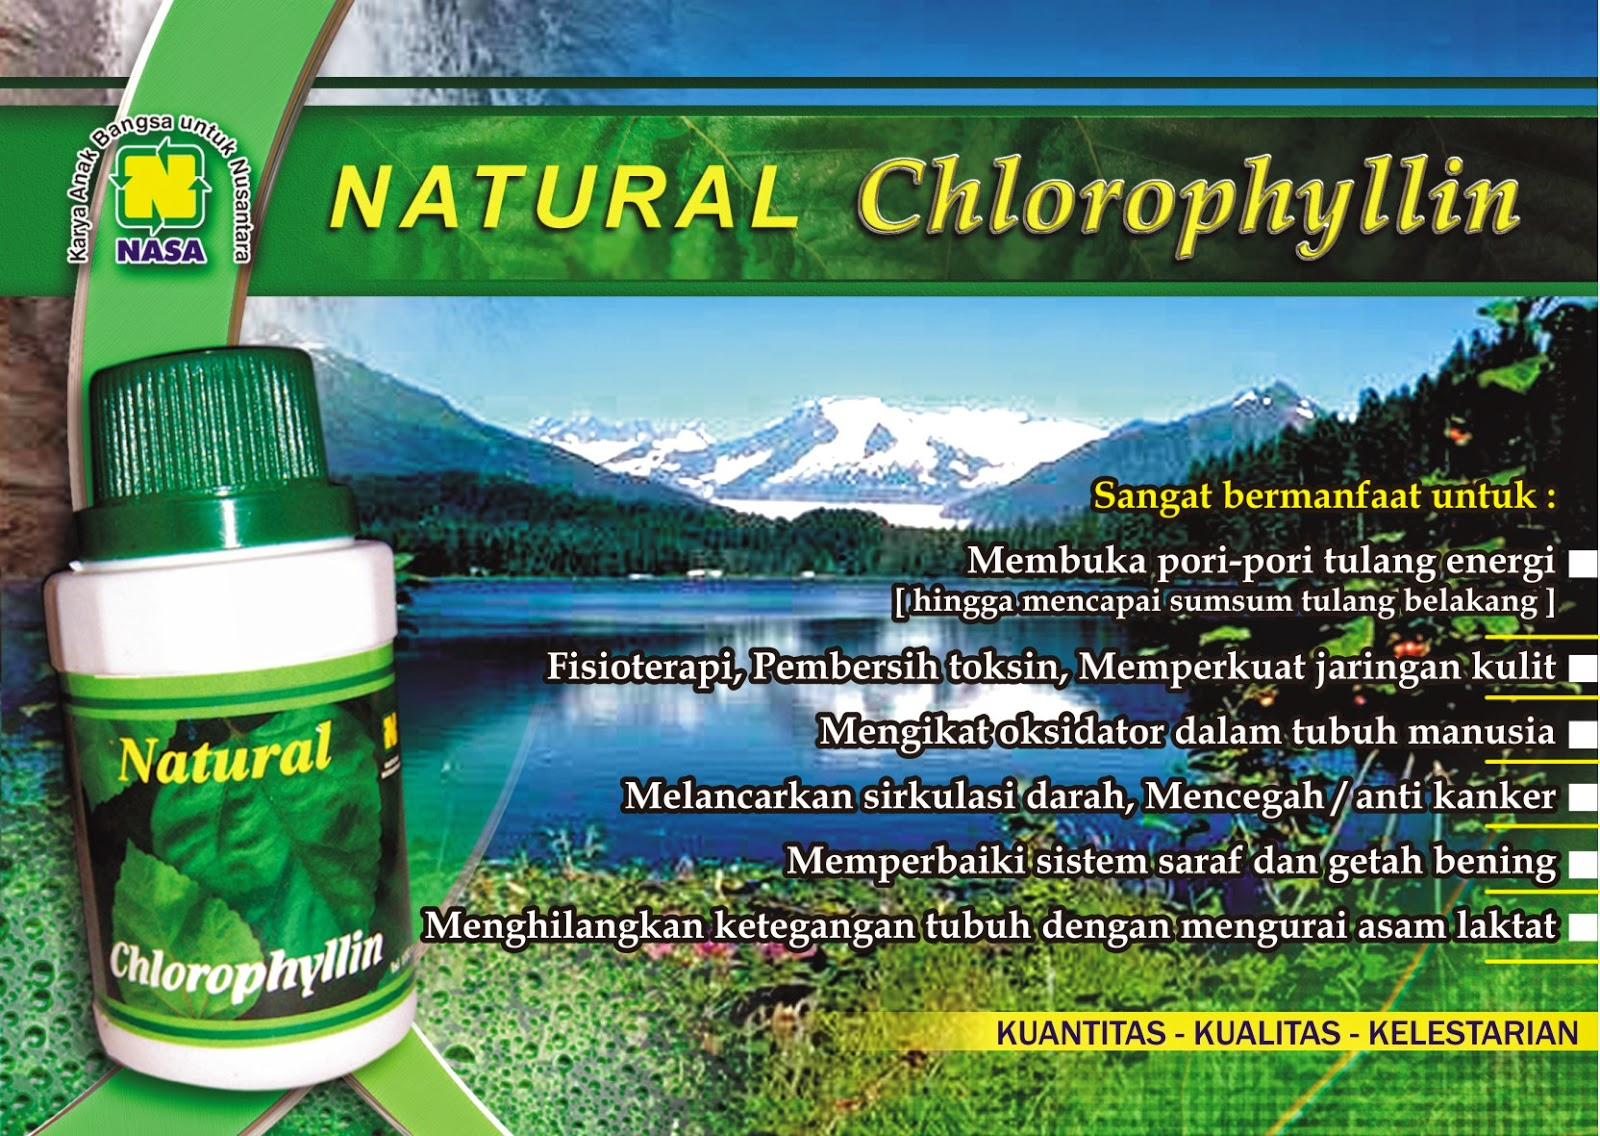 natural chlorophyllin, ncp nasa, natural chlorophyllin, herbal natural chlorophyllin, distributor natural chlorophyllin, toko kasimura, kasimura herbal, nasa jogjakarta, natural chlorophyllin jogja